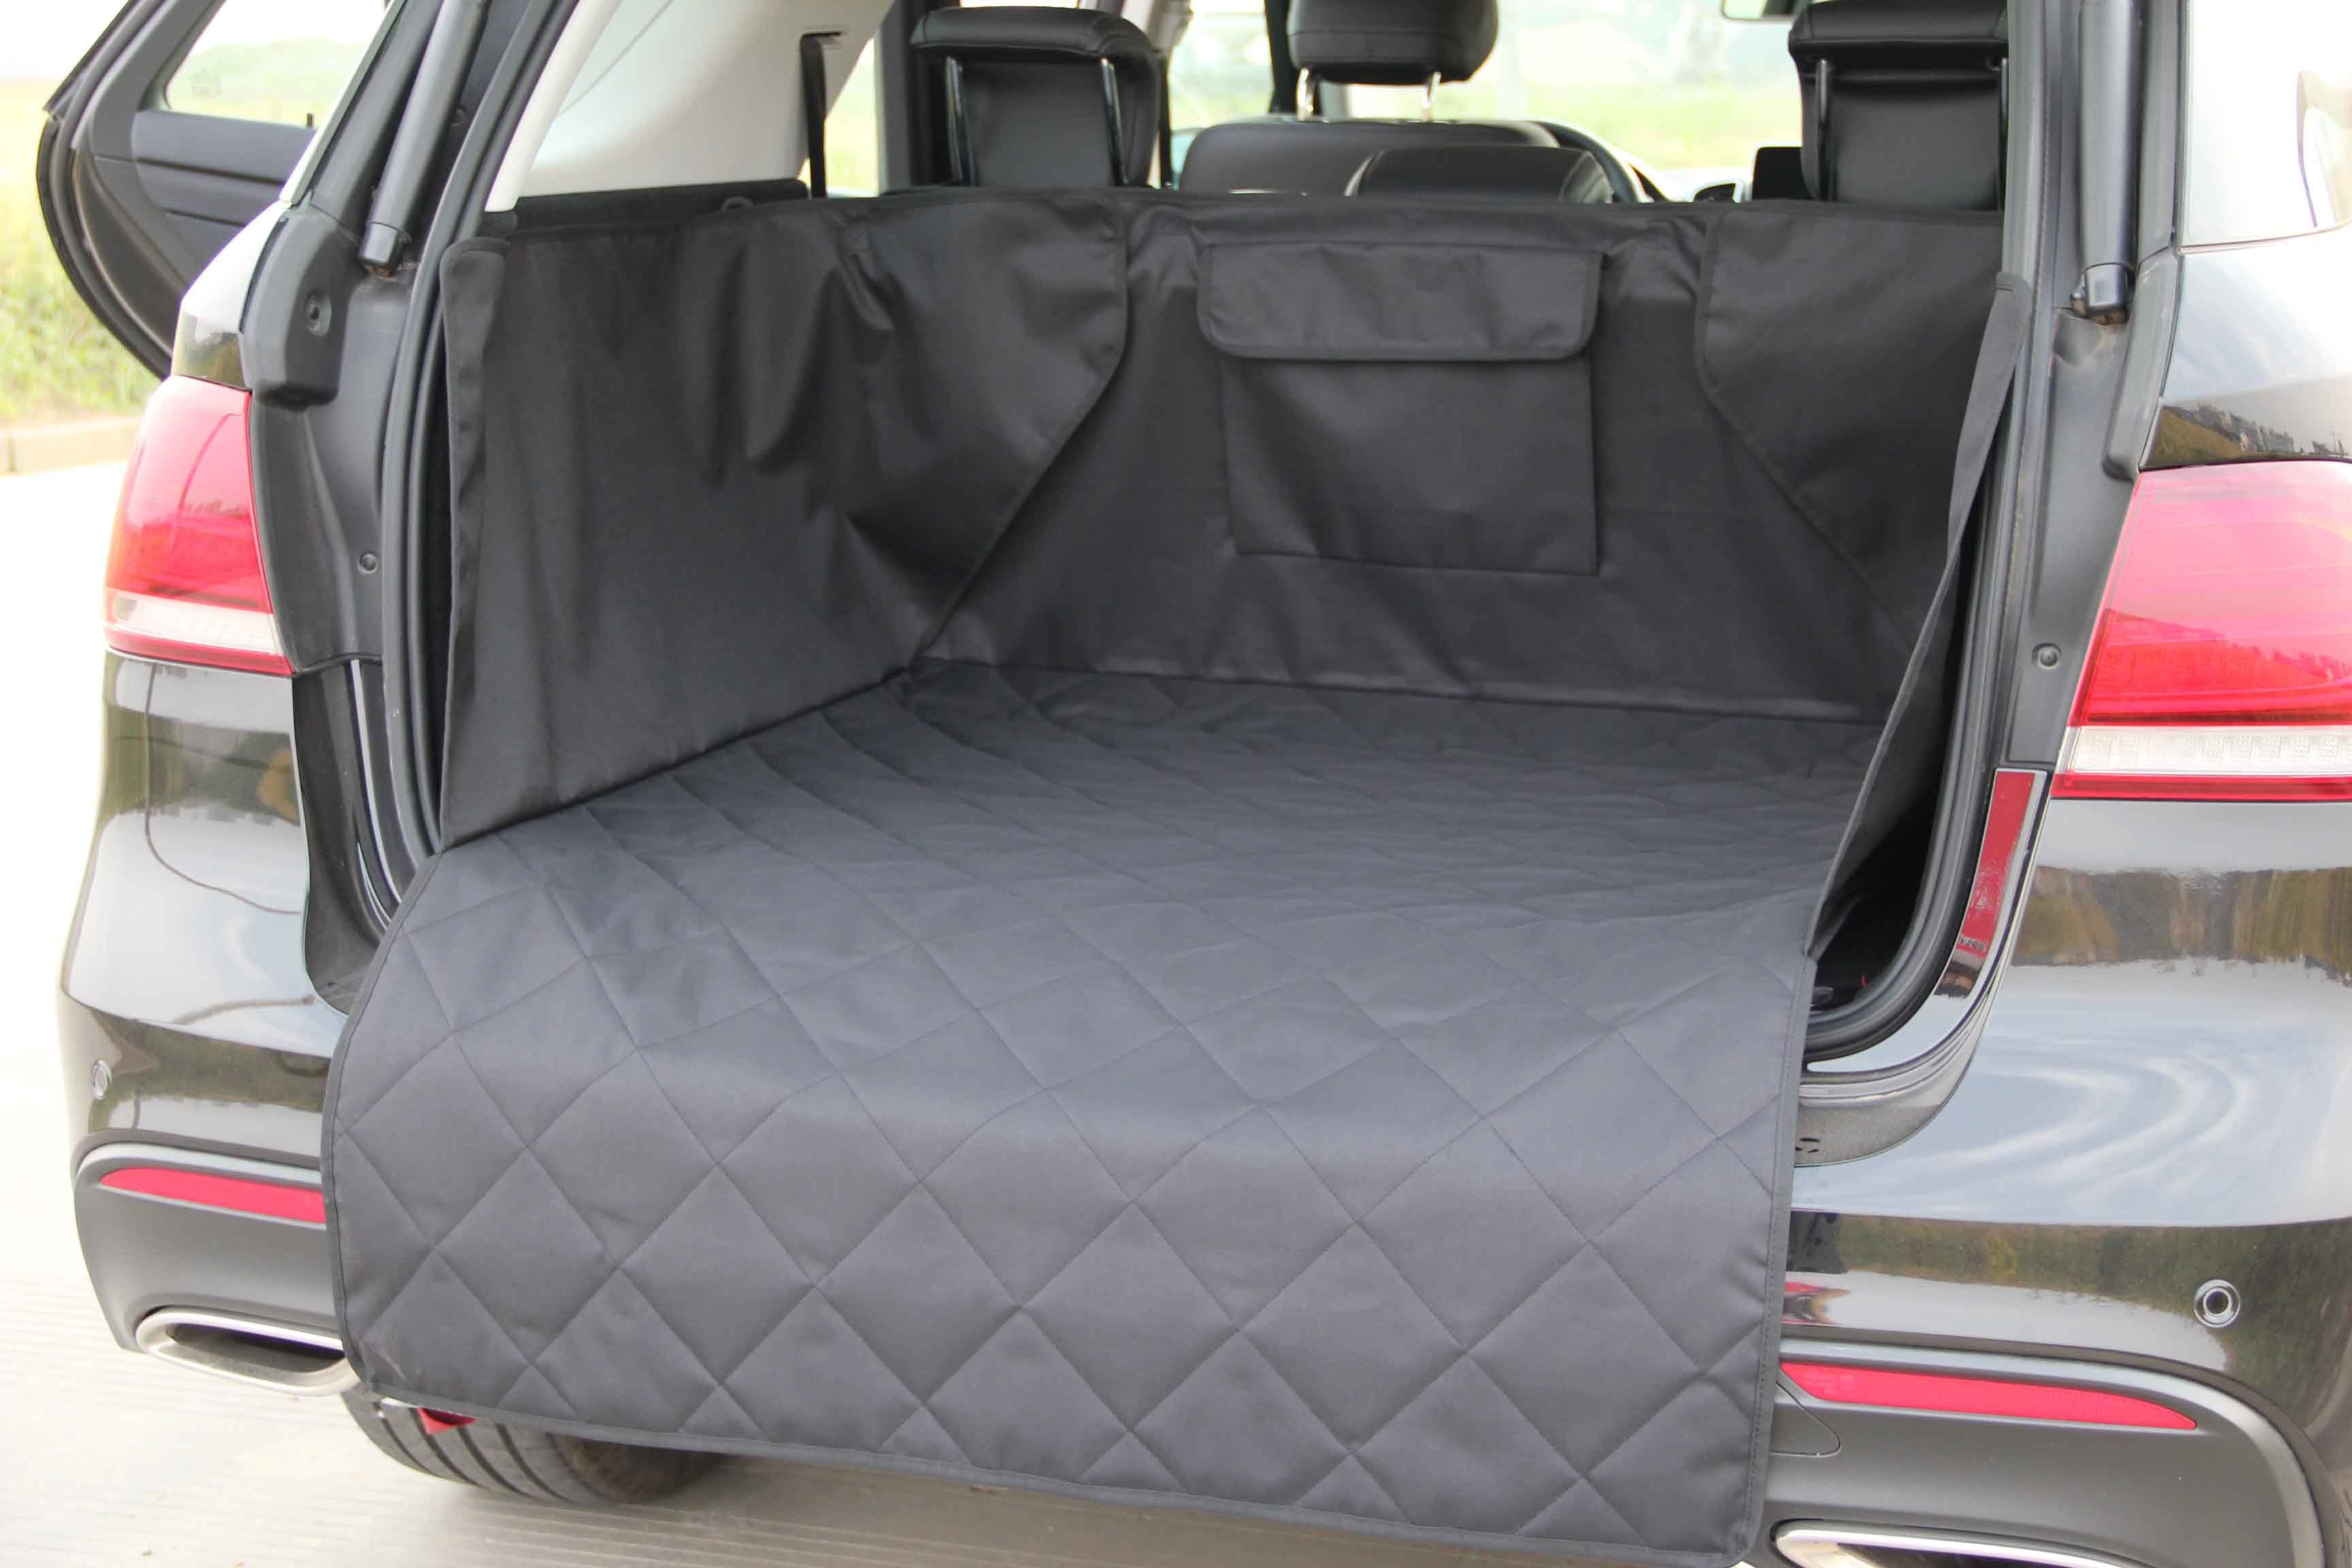 Size Pets Dog Suv Cargo Liner Cover Cargo Cover Standard Size For Most Of Compact And Small Suvslike Honda Cr V Vw Tiguan Toyota Rav Ford Edge